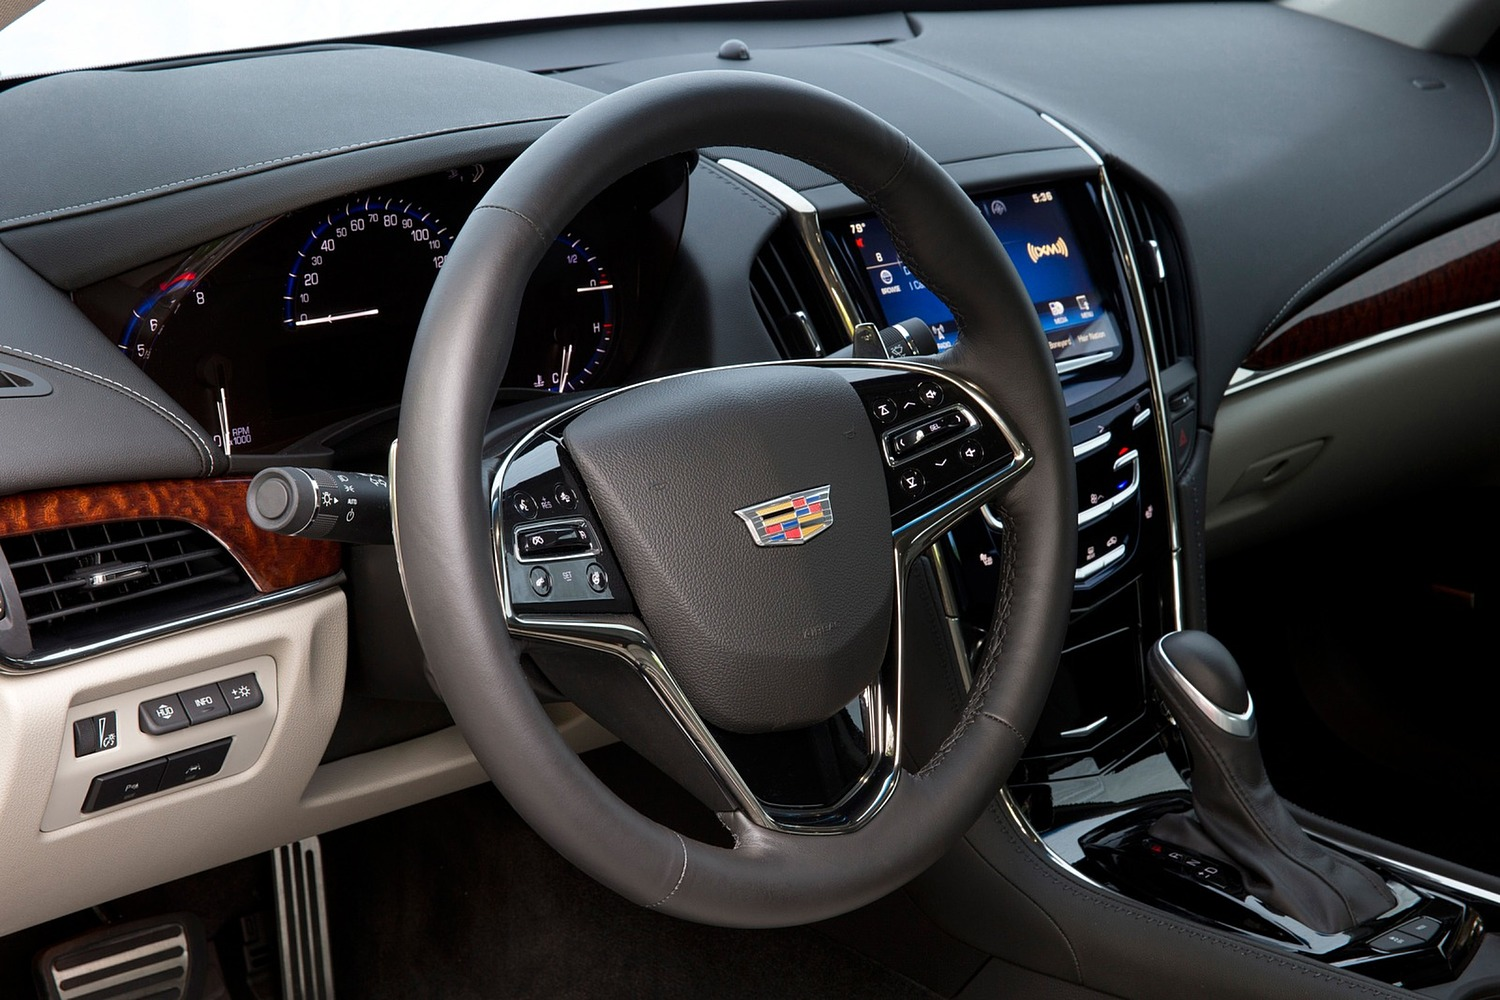 2018 Cadillac ATS Coupe Premium Performance Steering Wheel Detail